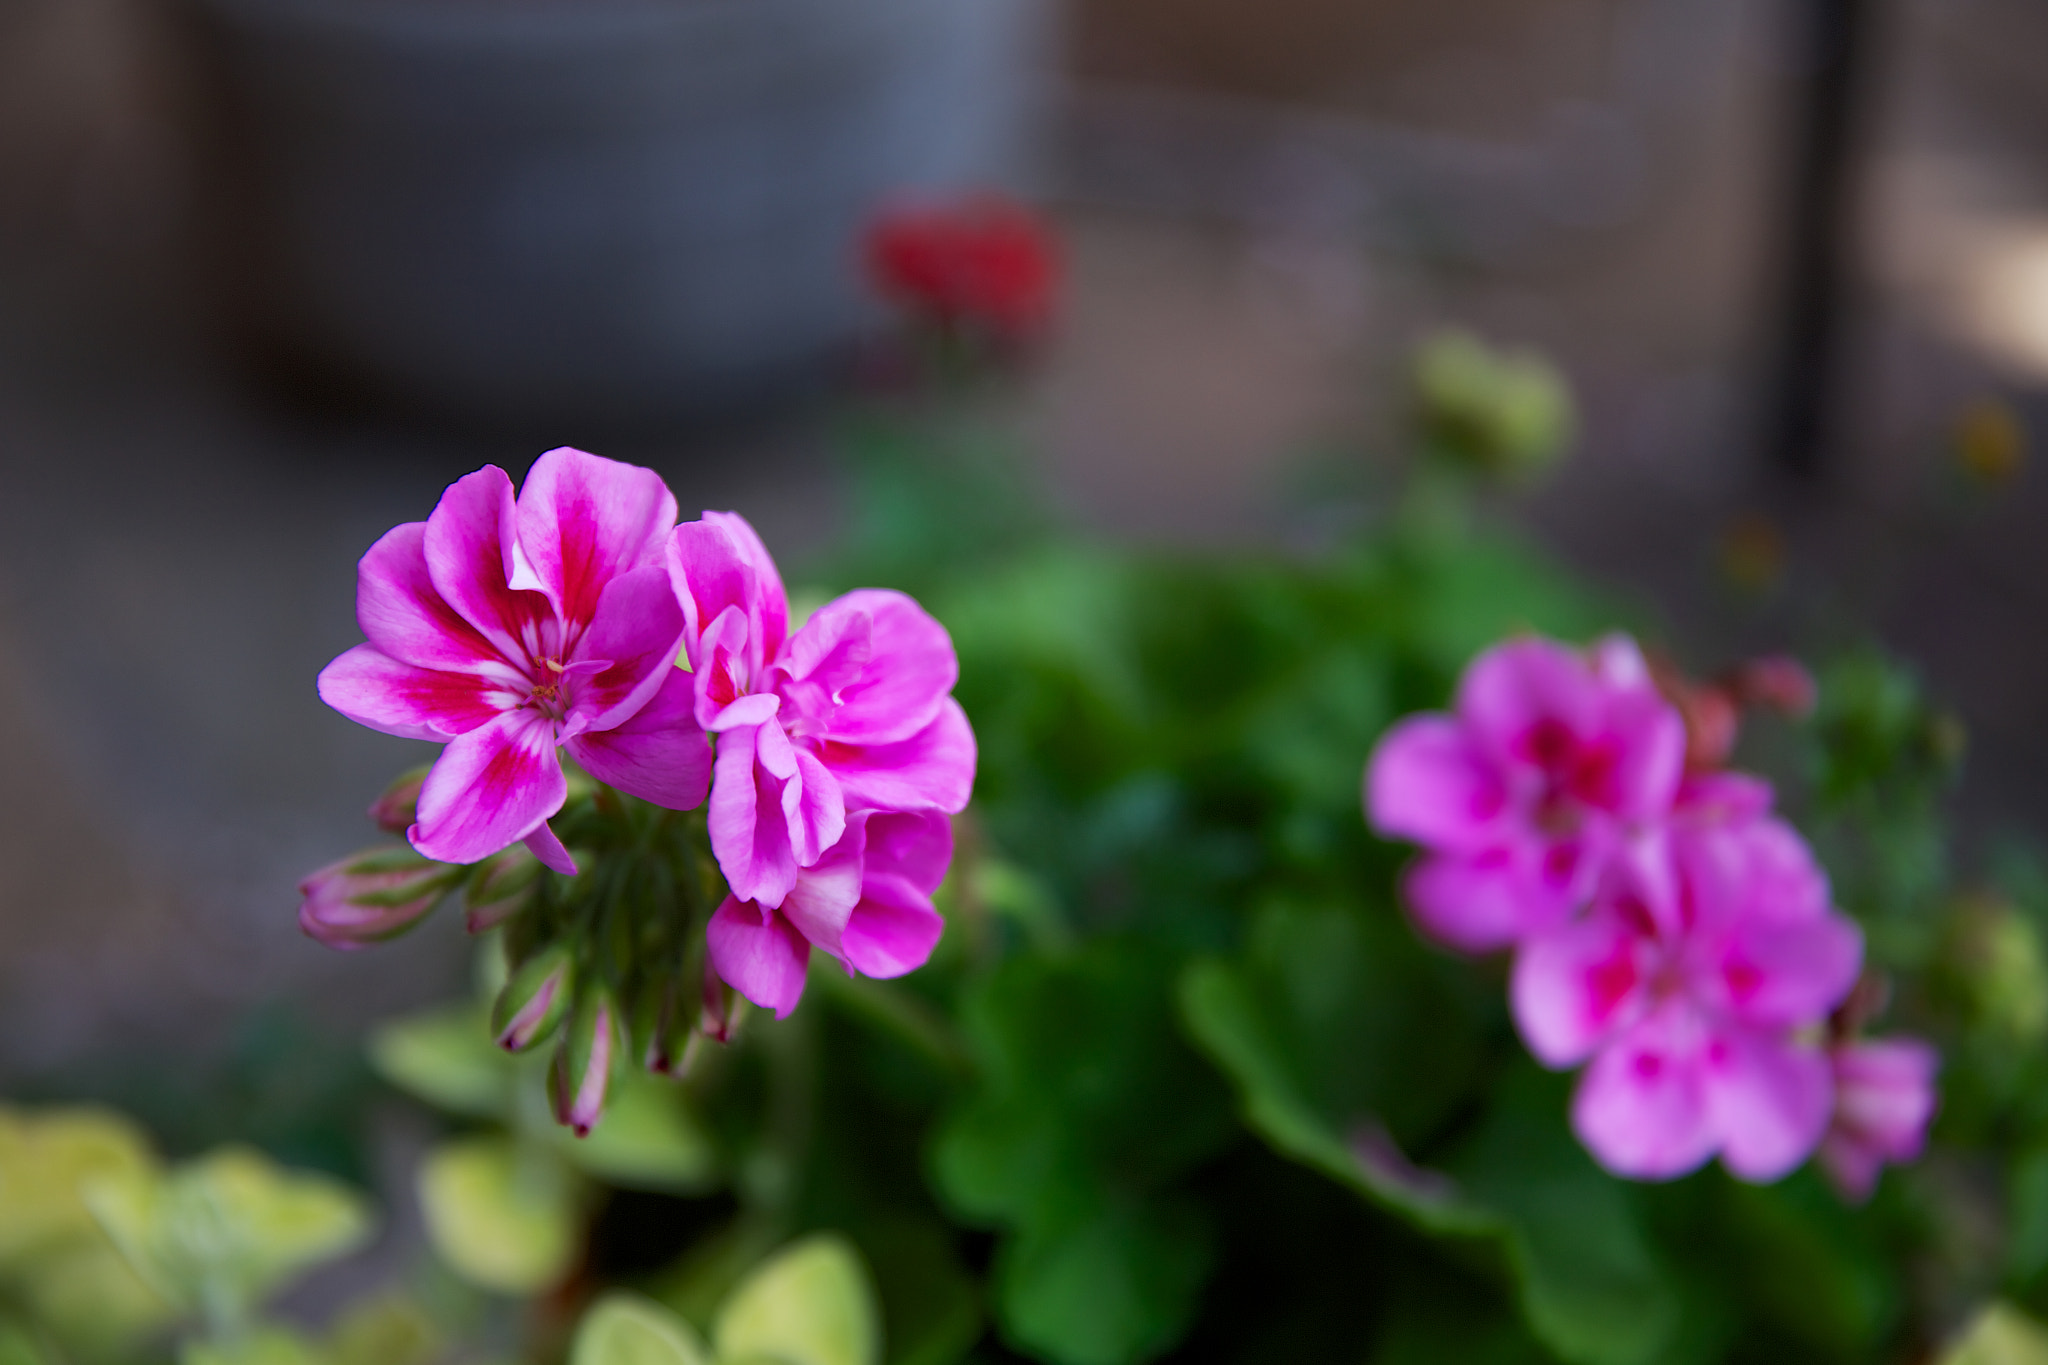 Photograph Pink flowers in a pot by Scotty Robson on 500px